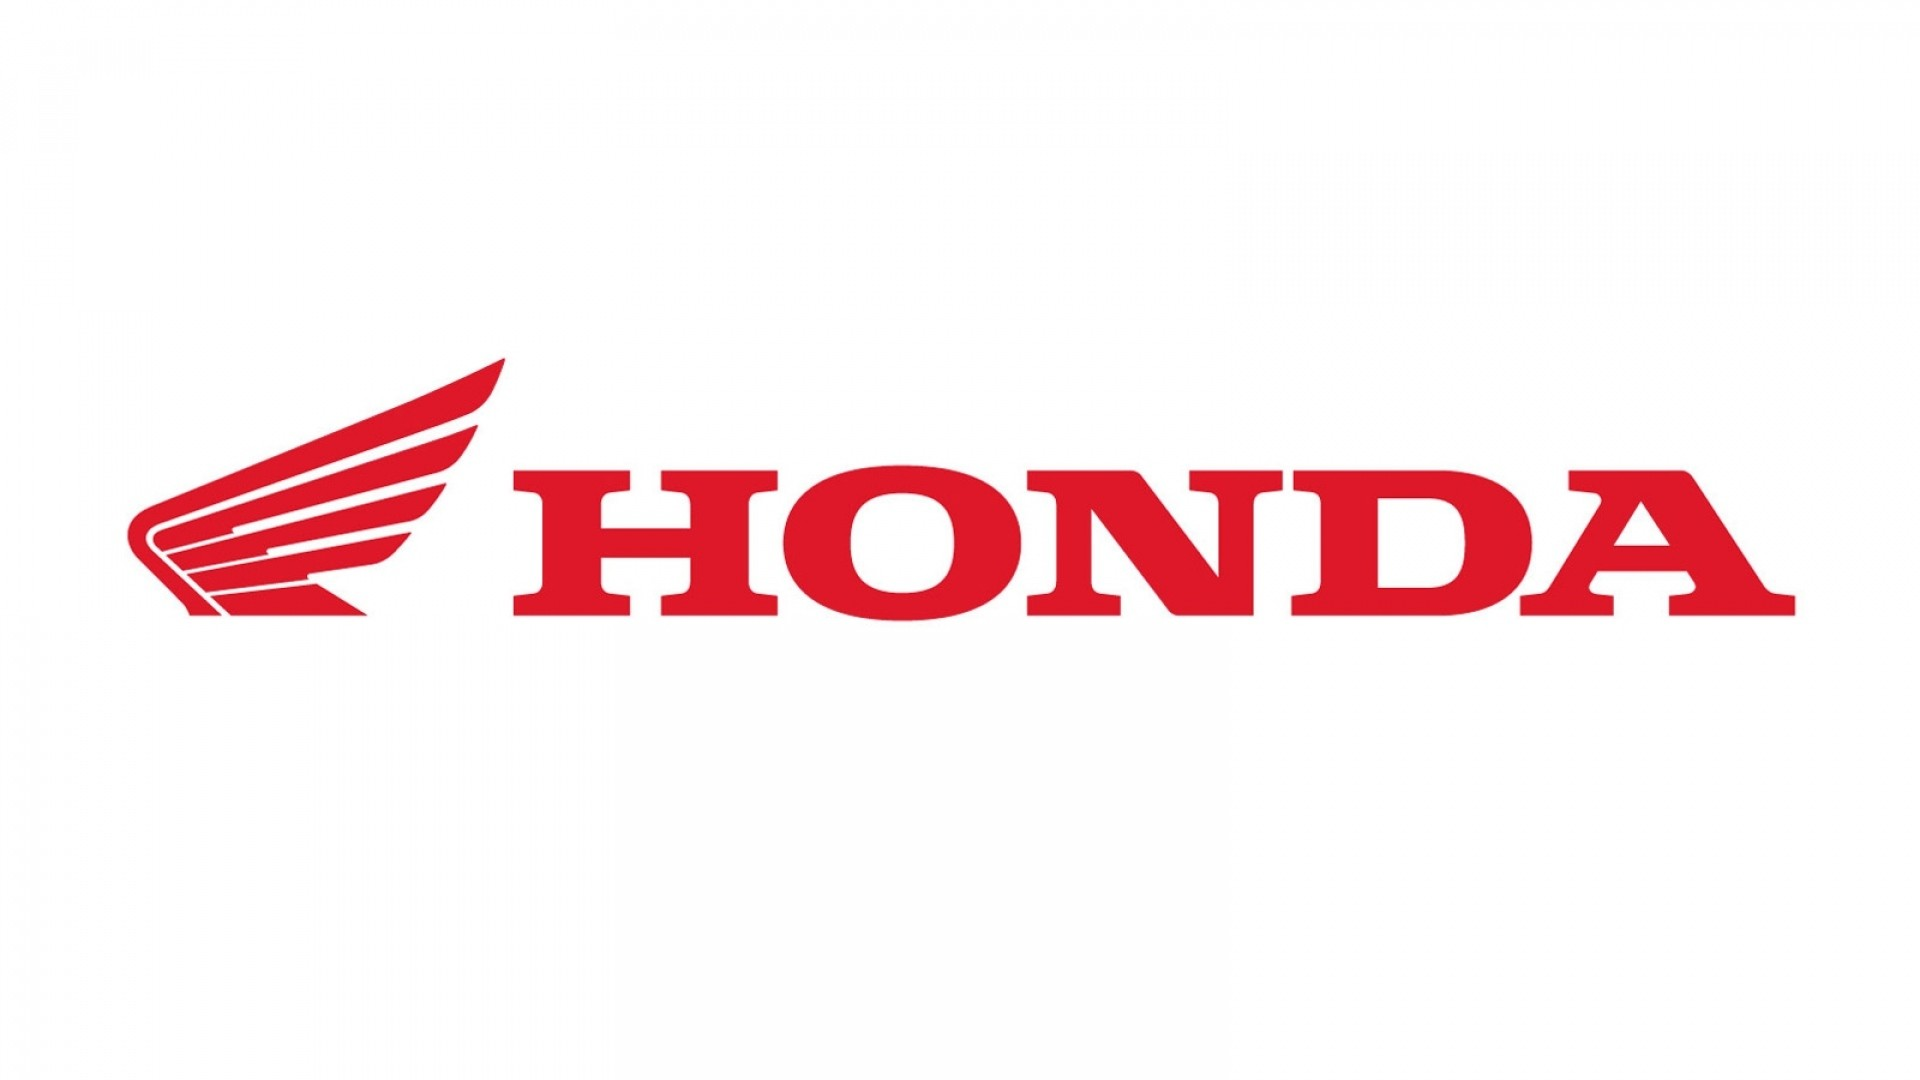 Wallpaper honda, symbol, logo, wings